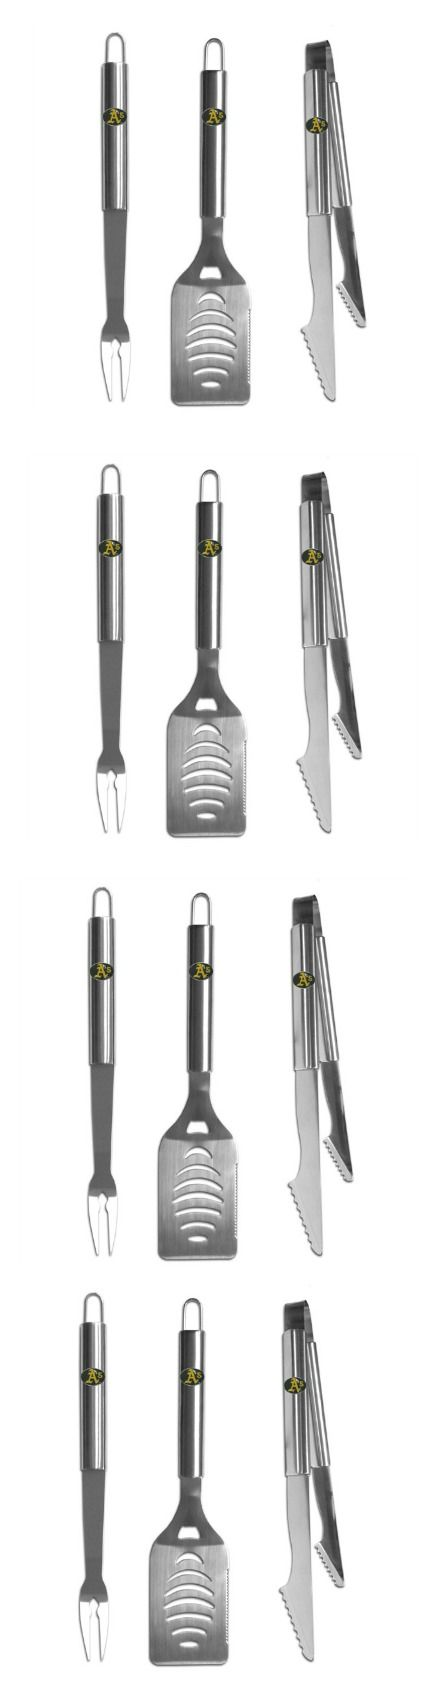 Oakland Athletics 3 pc Stainless Steel BBQ Set! Click The Image To Buy It Now or Tag Someone You Want To Buy This For. #OaklandAthletics